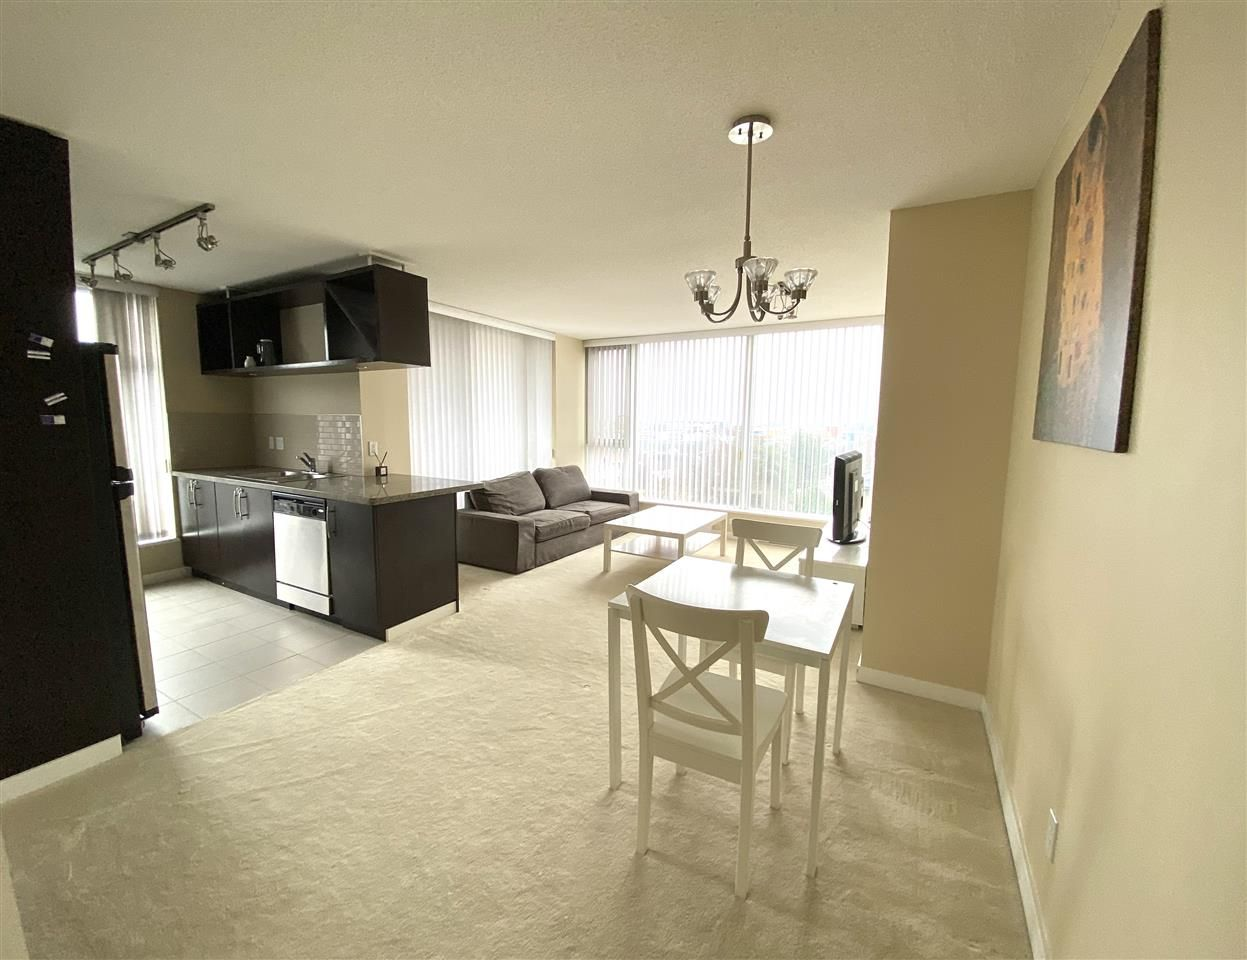 """Main Photo: 1003 5028 KWANTLEN Street in Richmond: Brighouse Condo for sale in """"SEASONS"""" : MLS®# R2544026"""